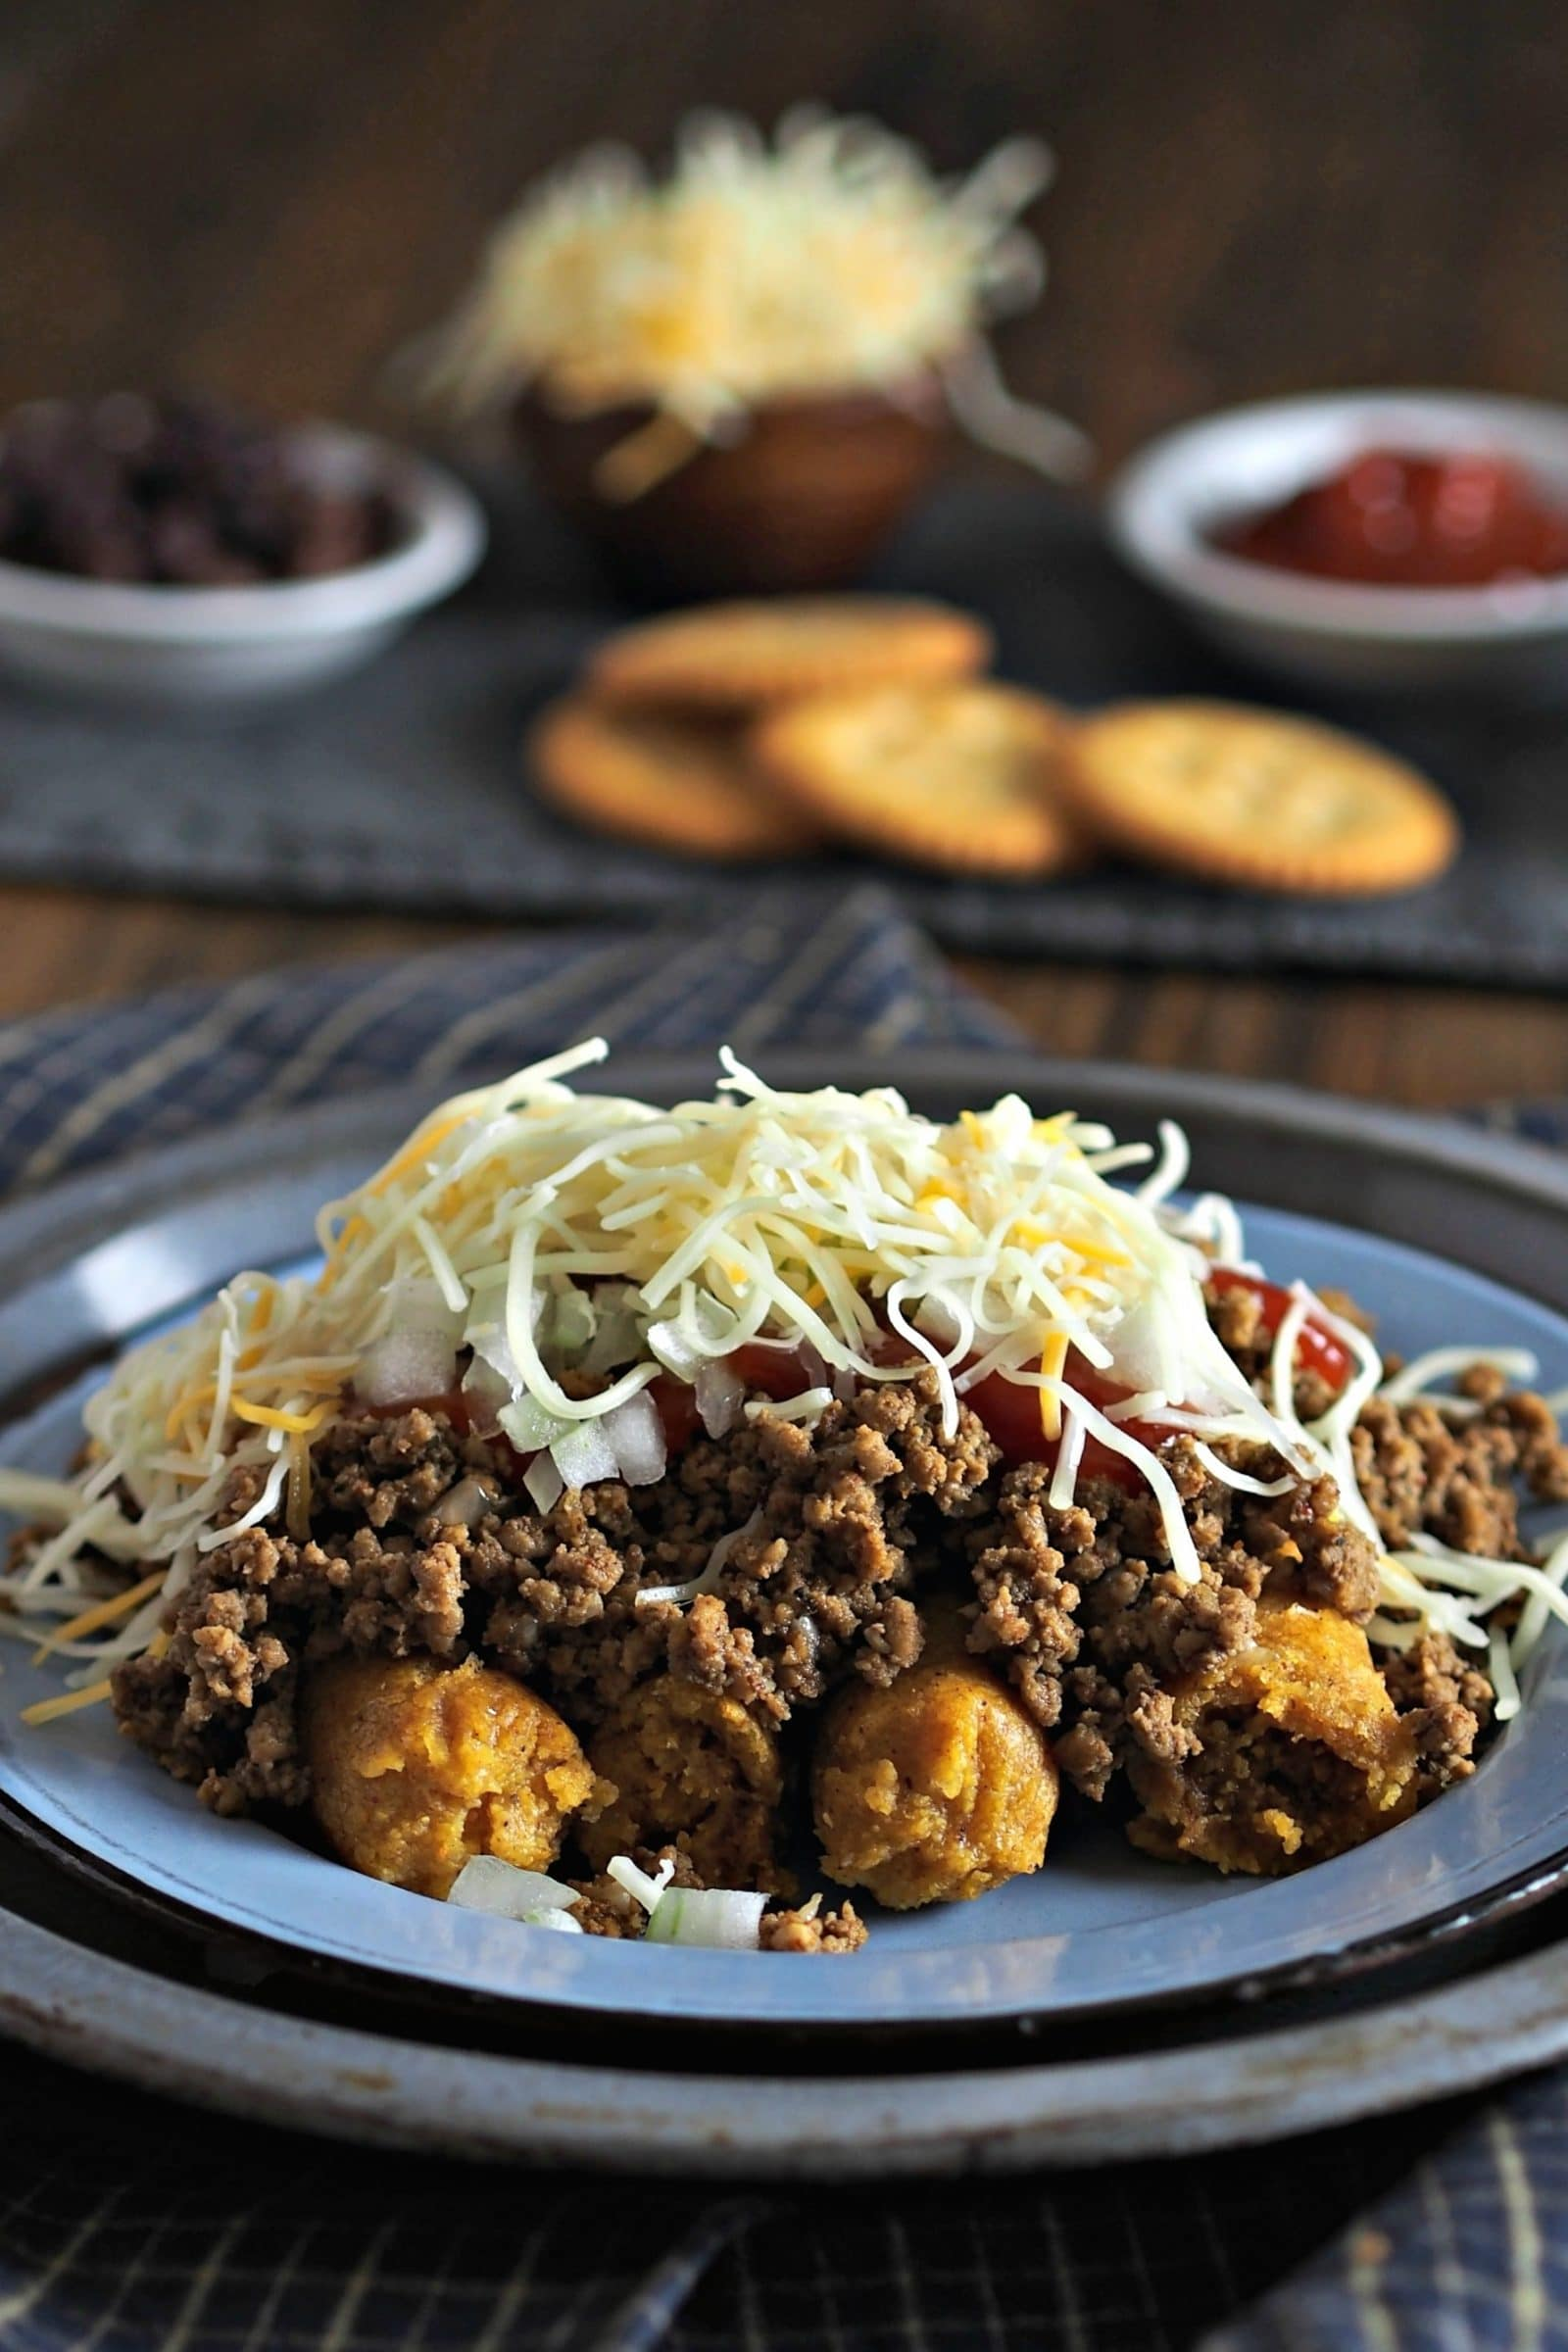 Copycat Dixon's Chili & Tamale Spread. Enjoy eating President Truman's favorite Dixon's Chili Parlor chili at home. Founded in 1919 & still going strong. Simply Sated